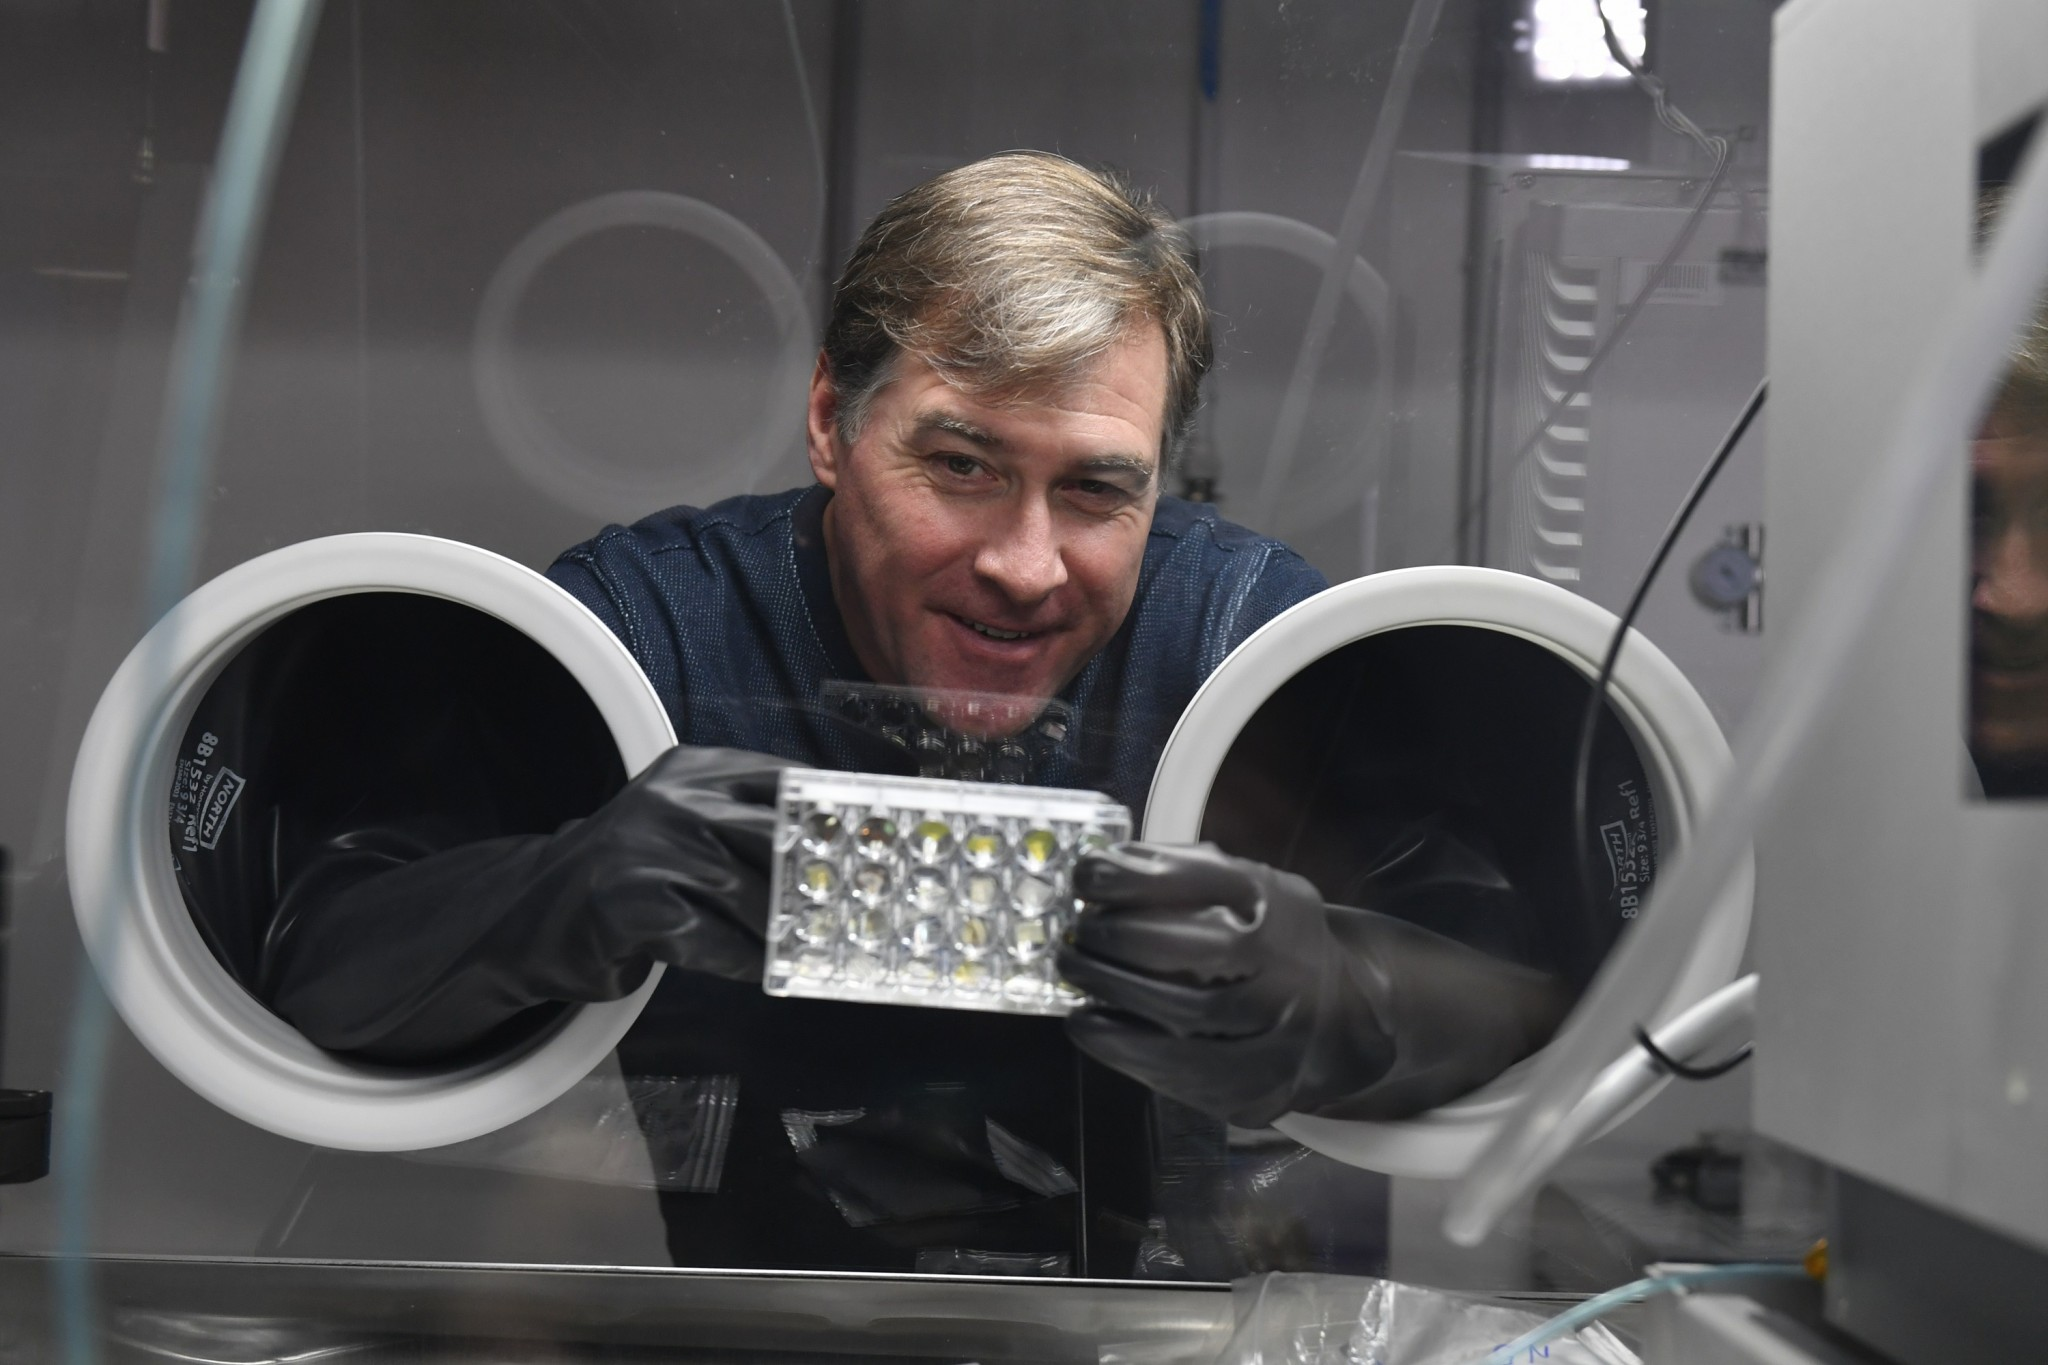 Professor Keith Stevenson, Director of Skoltech's Centers for Energy Systems and Electrochemical Energy Storage. Photo: Skoltech.